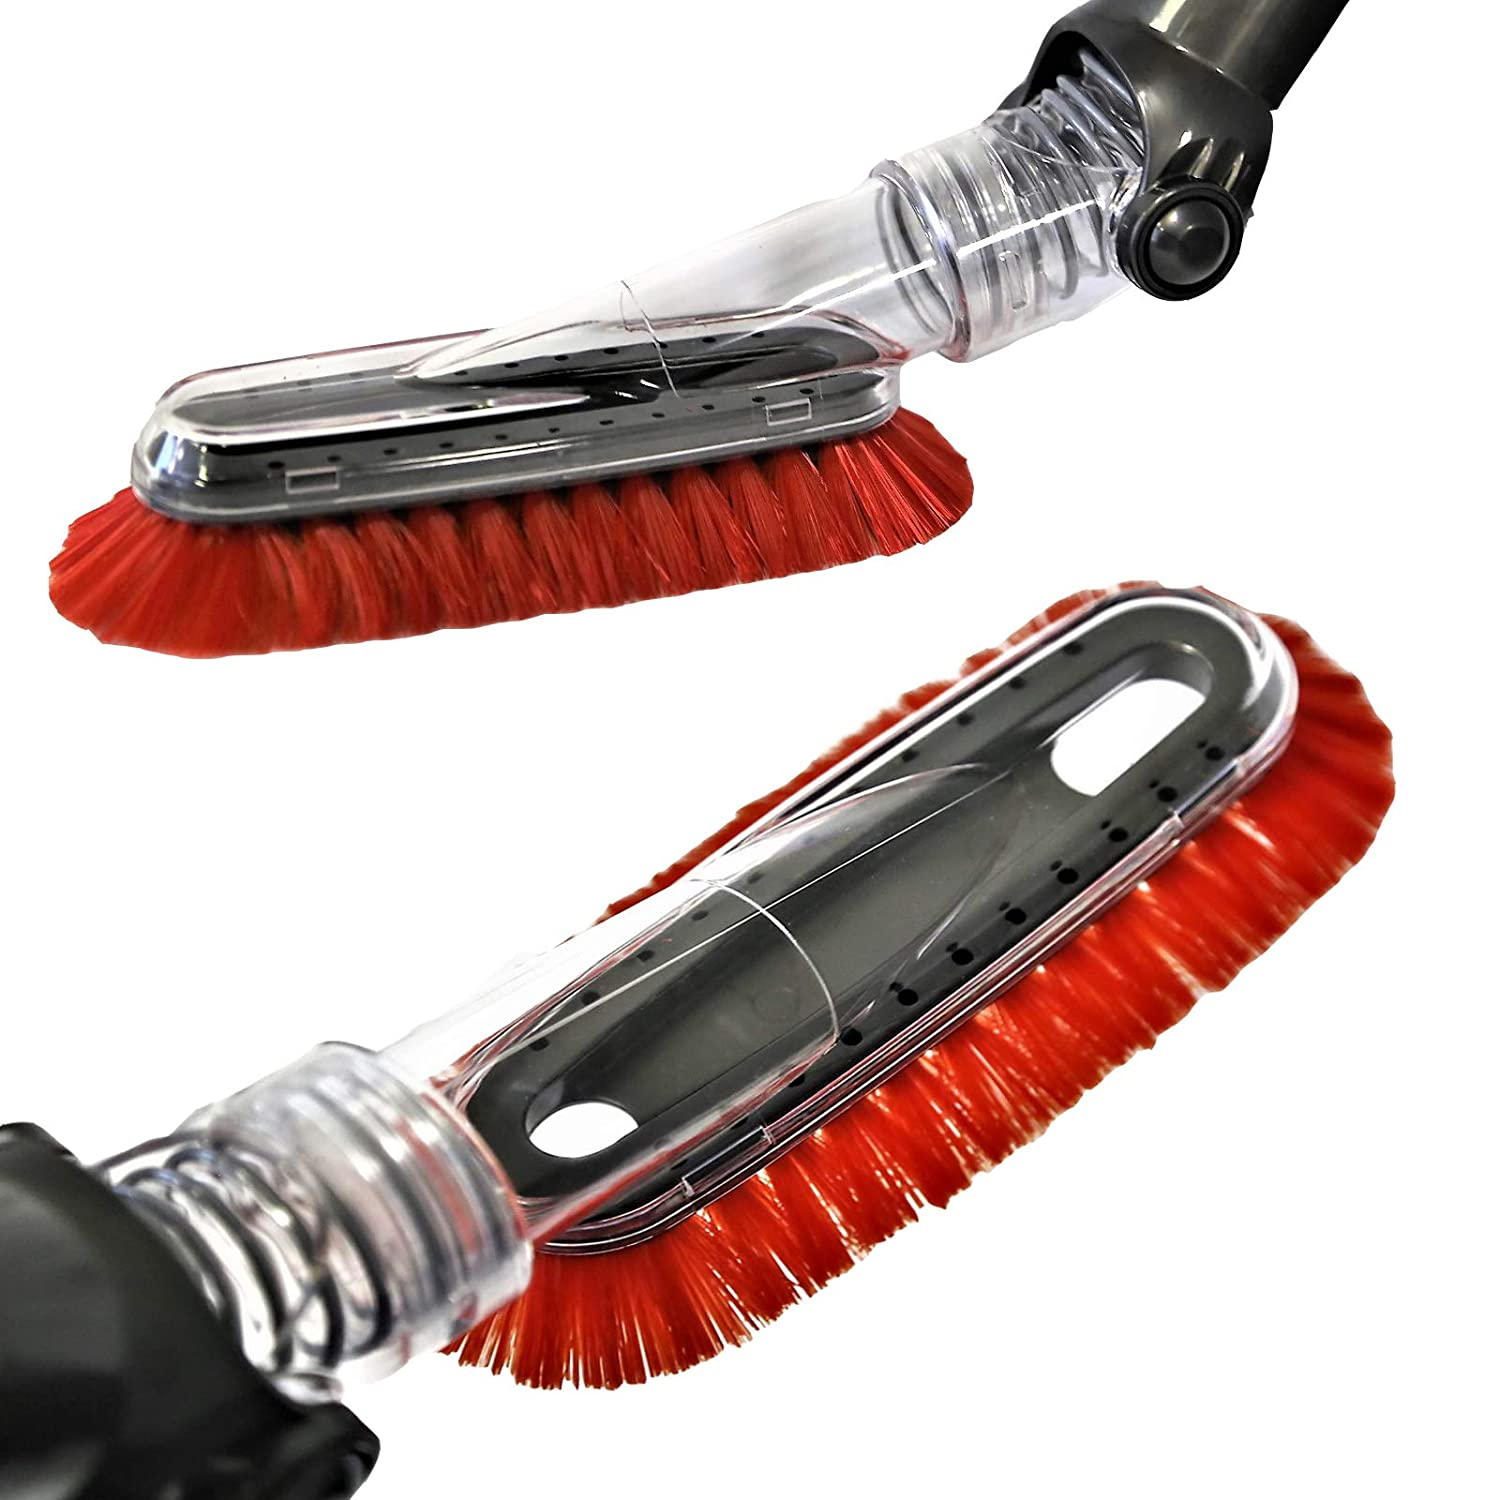 Replacement Multi-Angle FlexiSoft Dusting Brush for Shark 1 3/8 Hose 32-35mm Adapter Red Brush